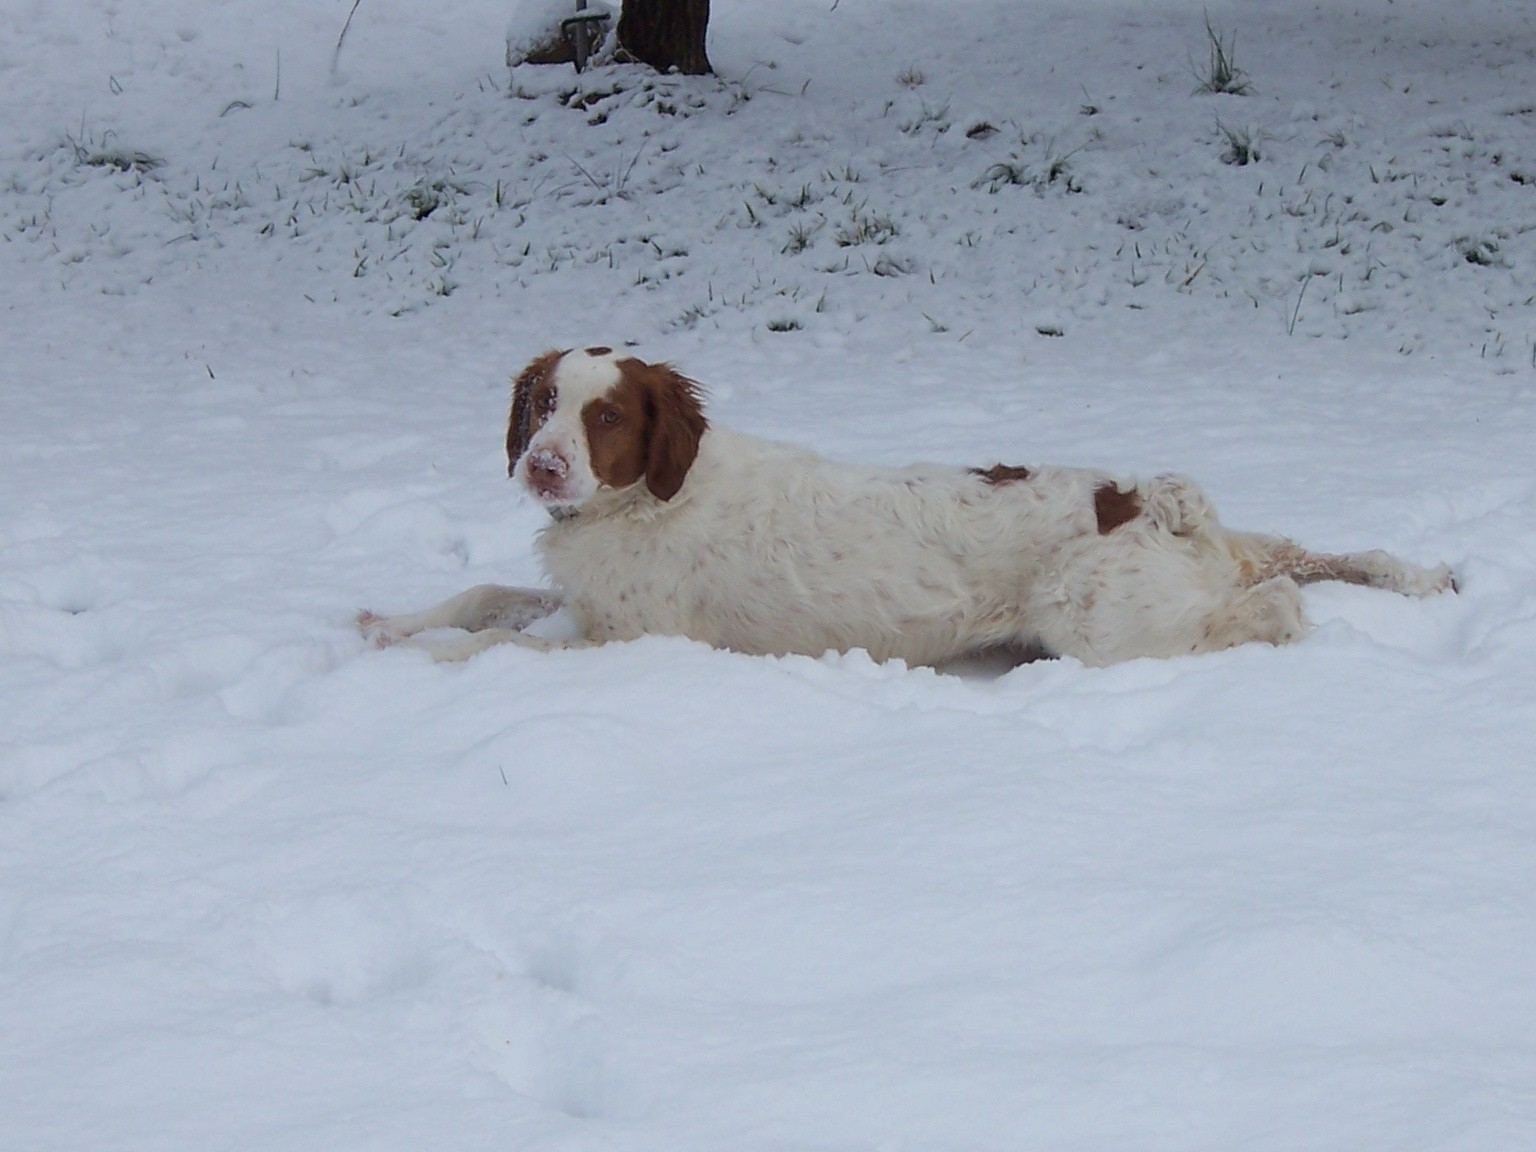 Beau the Snow Dog in his prime